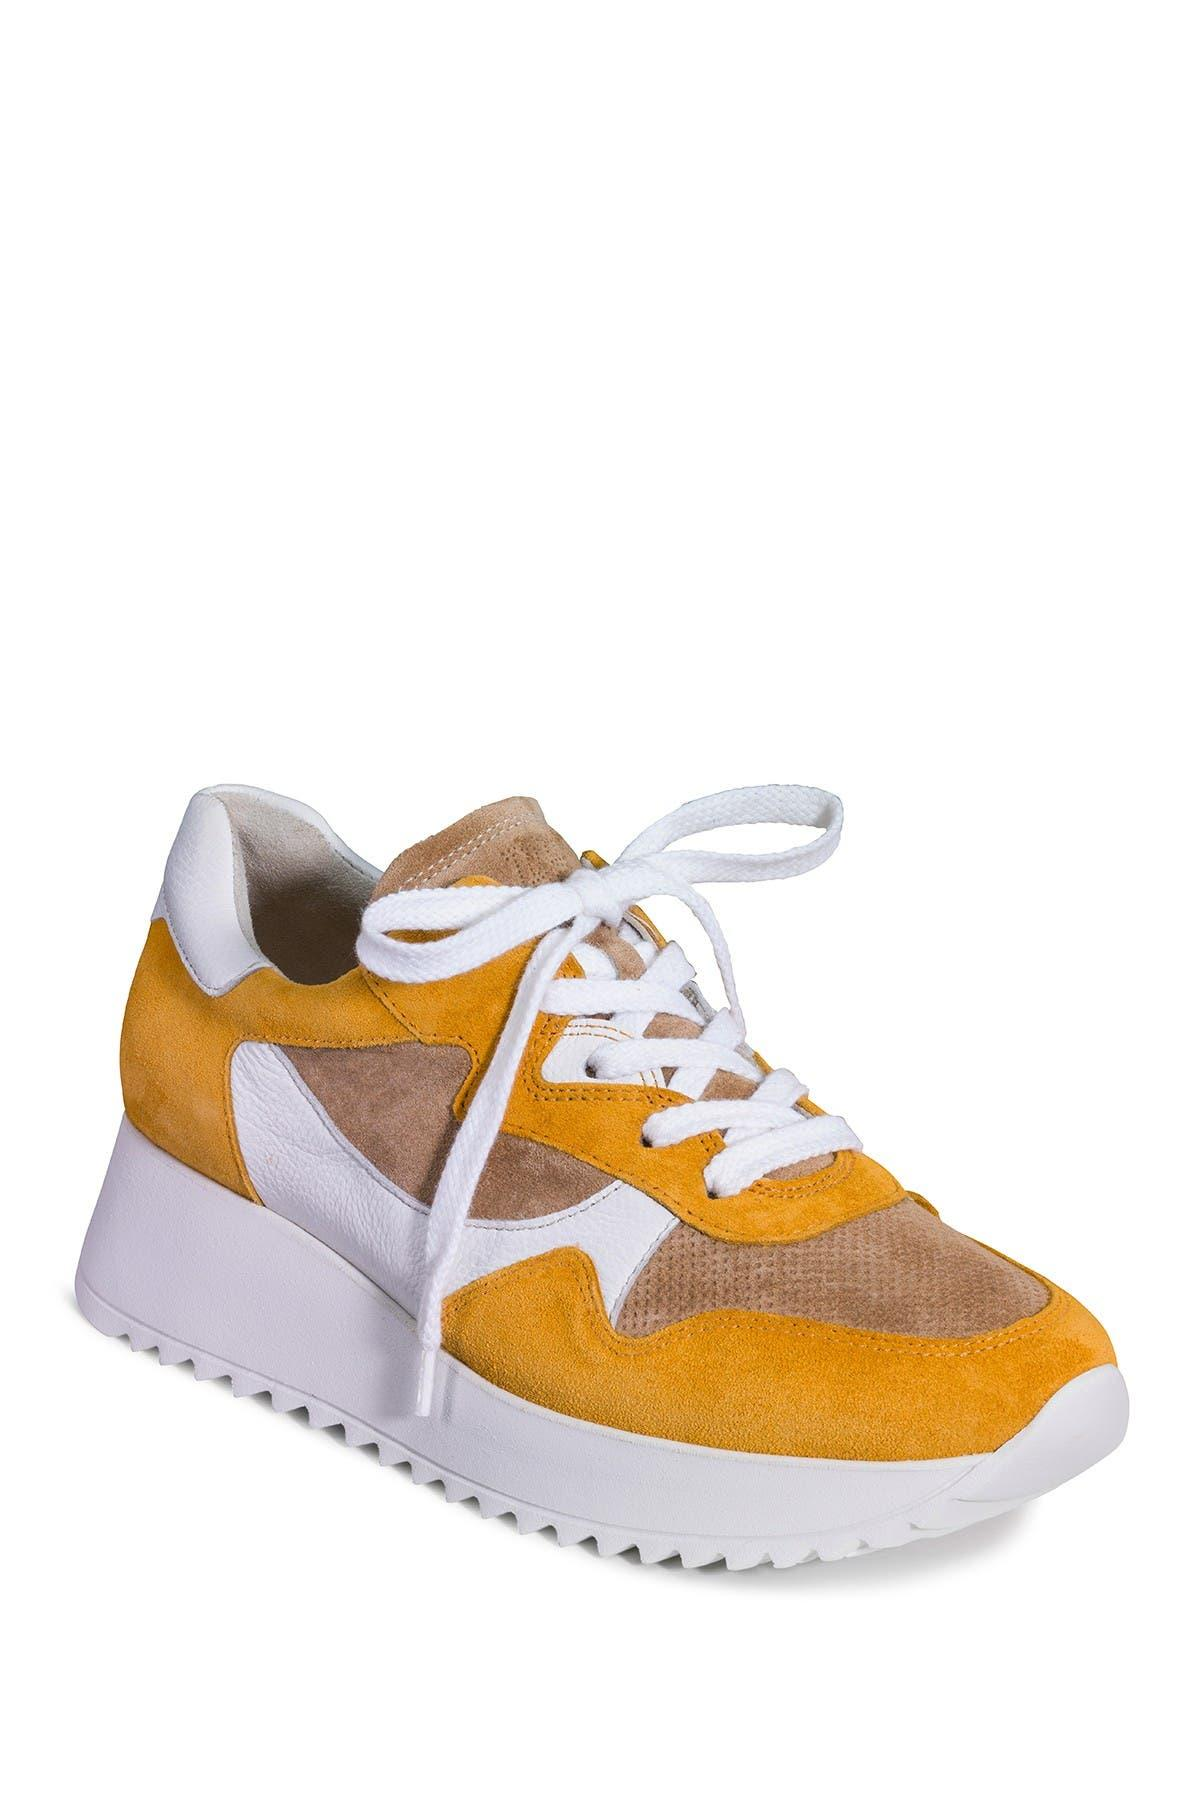 r4949 suede leather sneaker